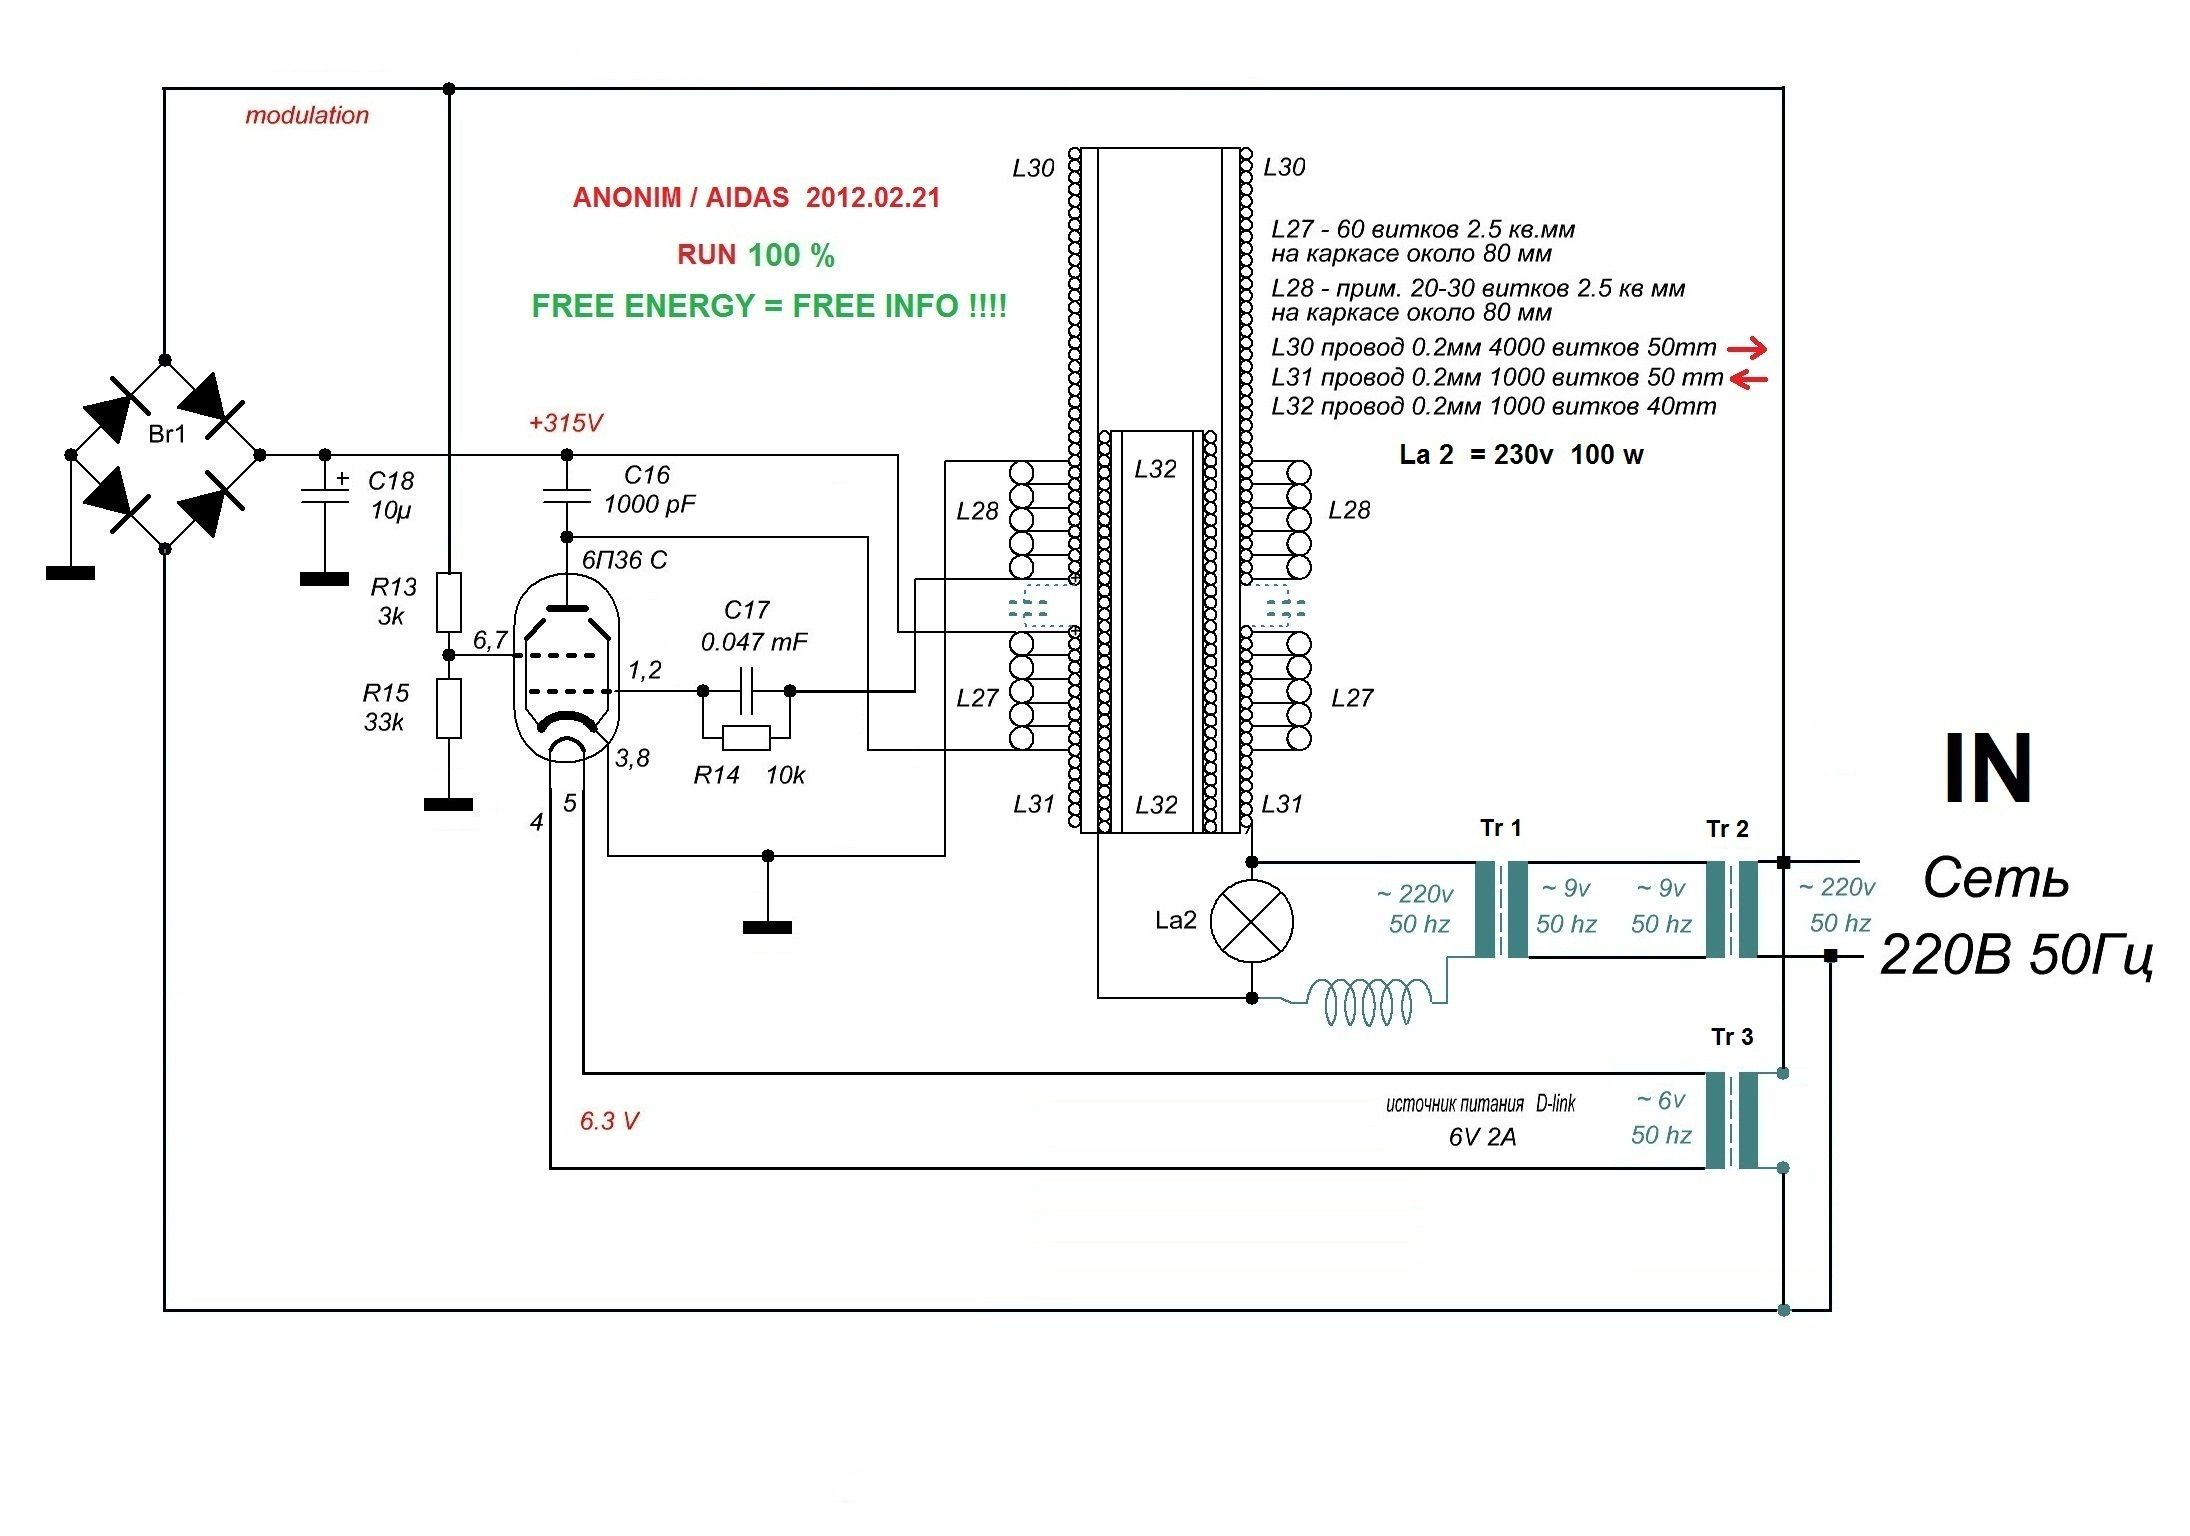 medium resolution of re selfrunning free energy devices up to 5 kw from tariel kapanadze free energy kapanadze free energy generator schematics